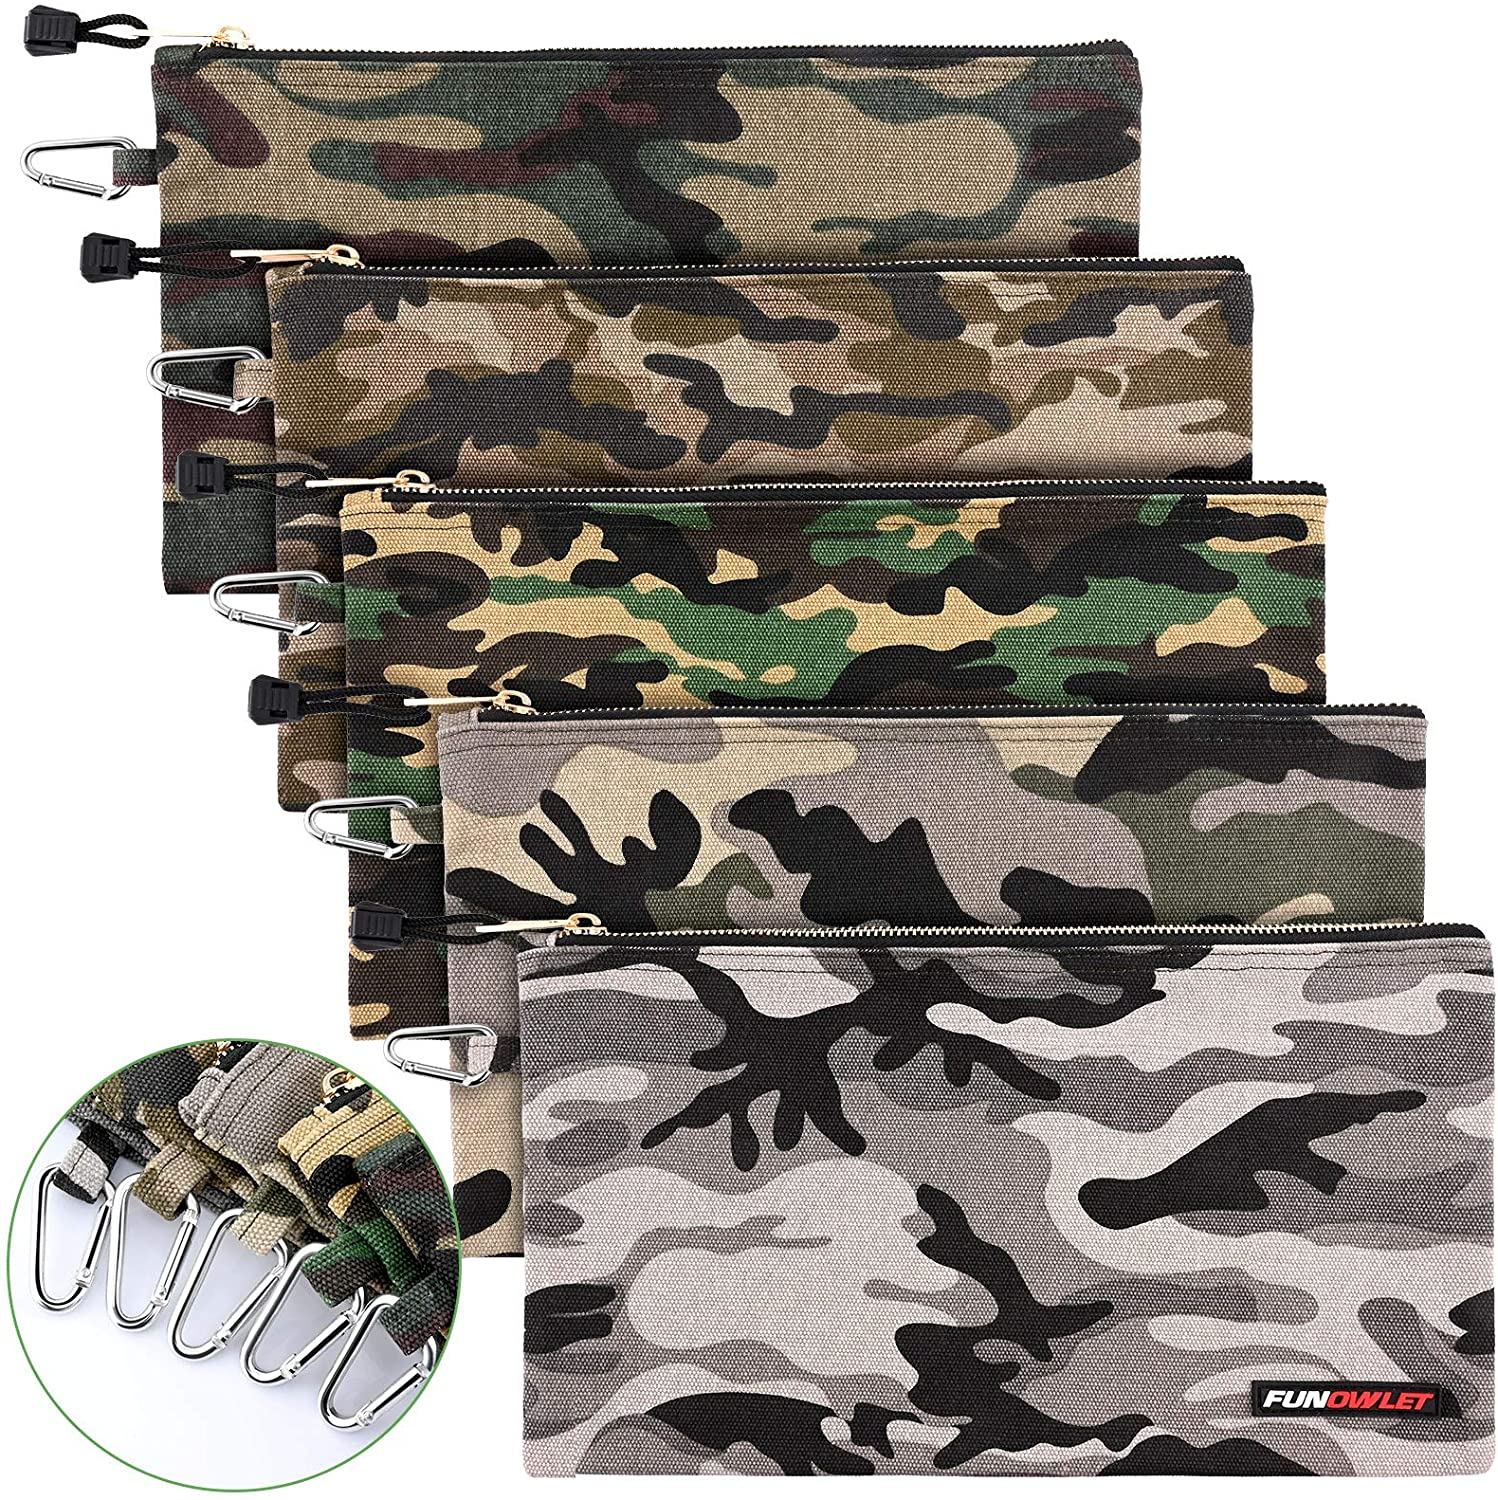 Canvas Tool Pouch Zipper Bag - 5 Heavy Utility Duty Ba Camo Pack Ranking integrated 1st place Special price